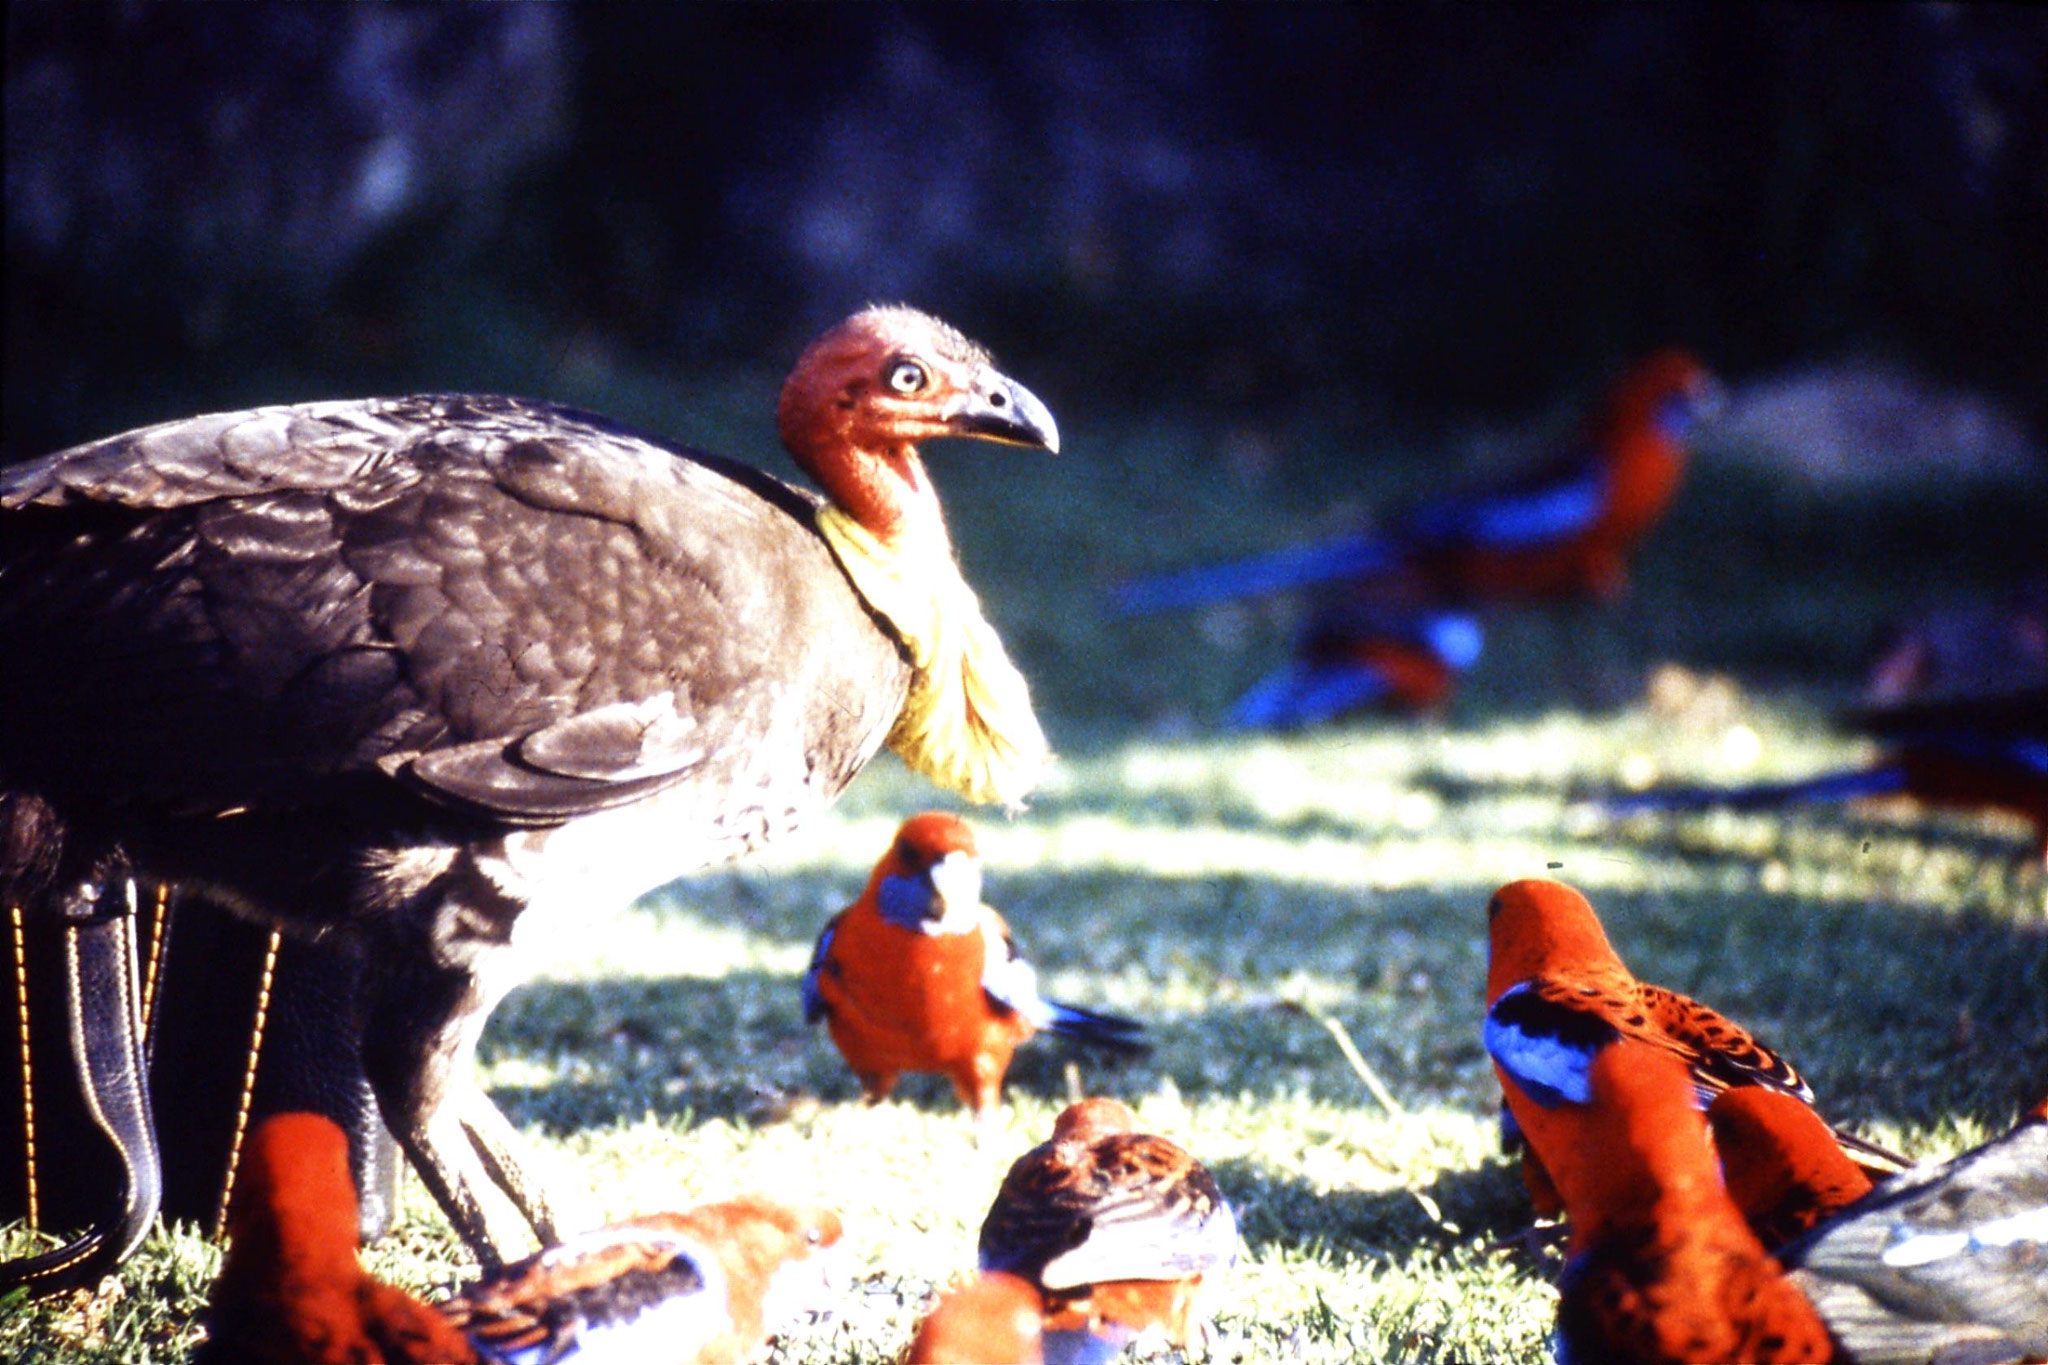 12/10/1990: 2: Mt Lamington, brush turkey and rosellas